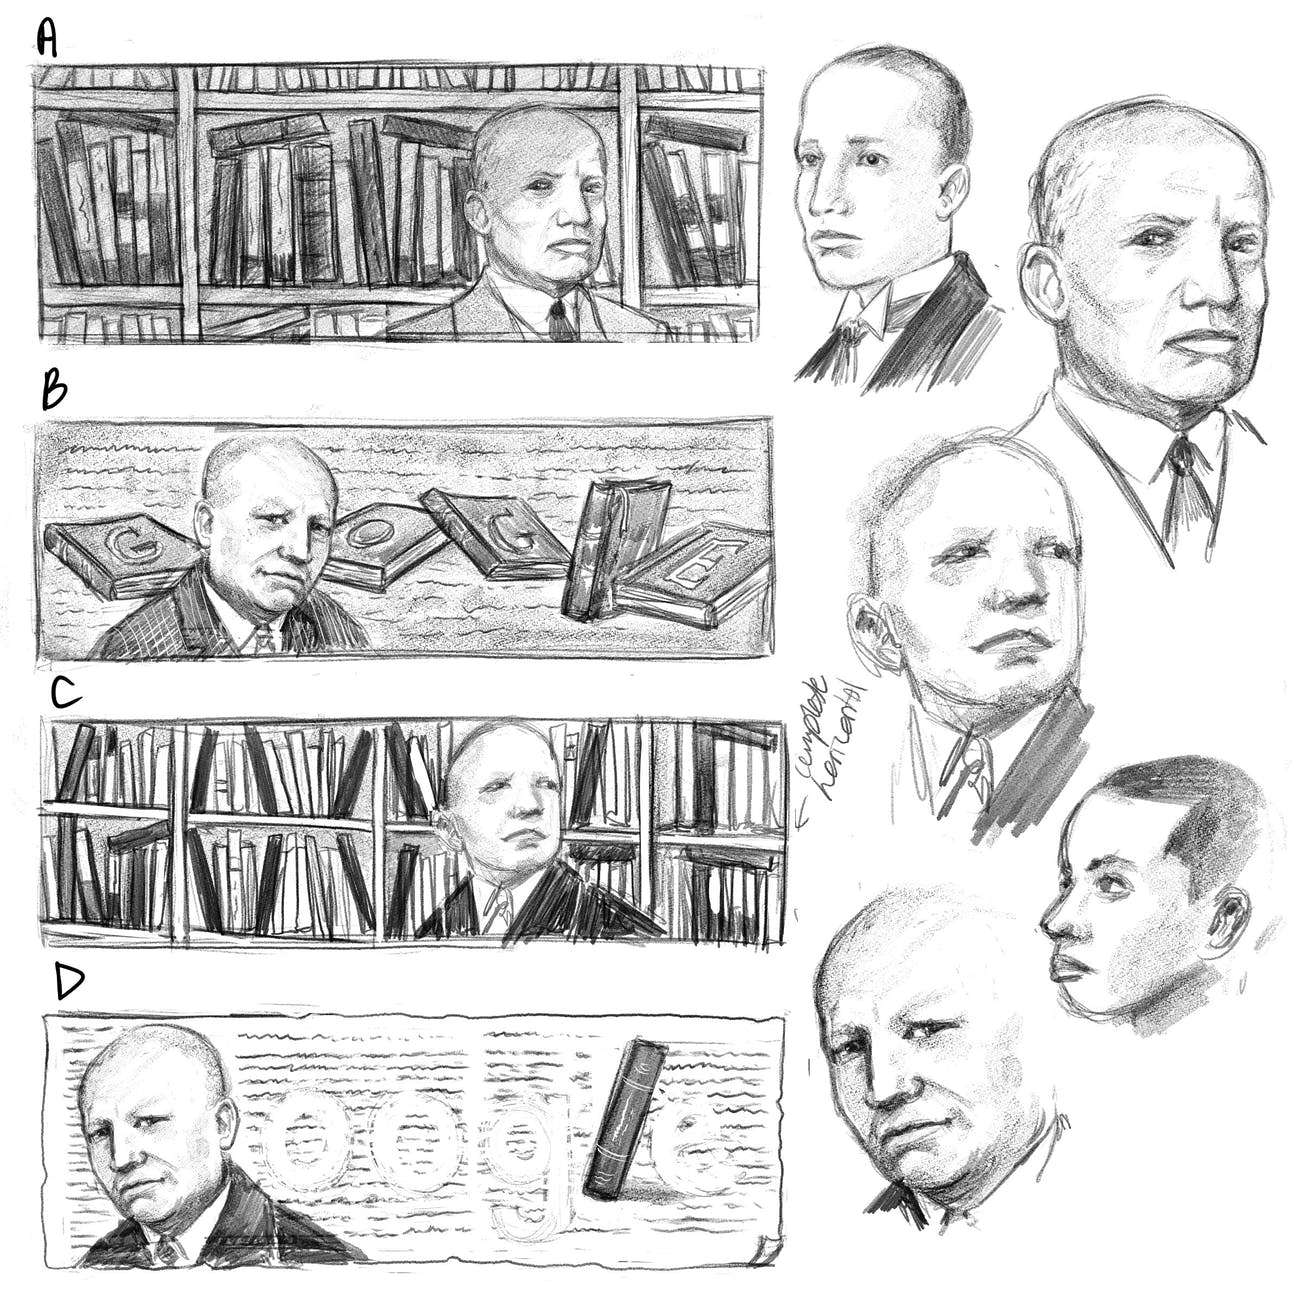 Google's early drafts of the Carter G. Woodson doodle.